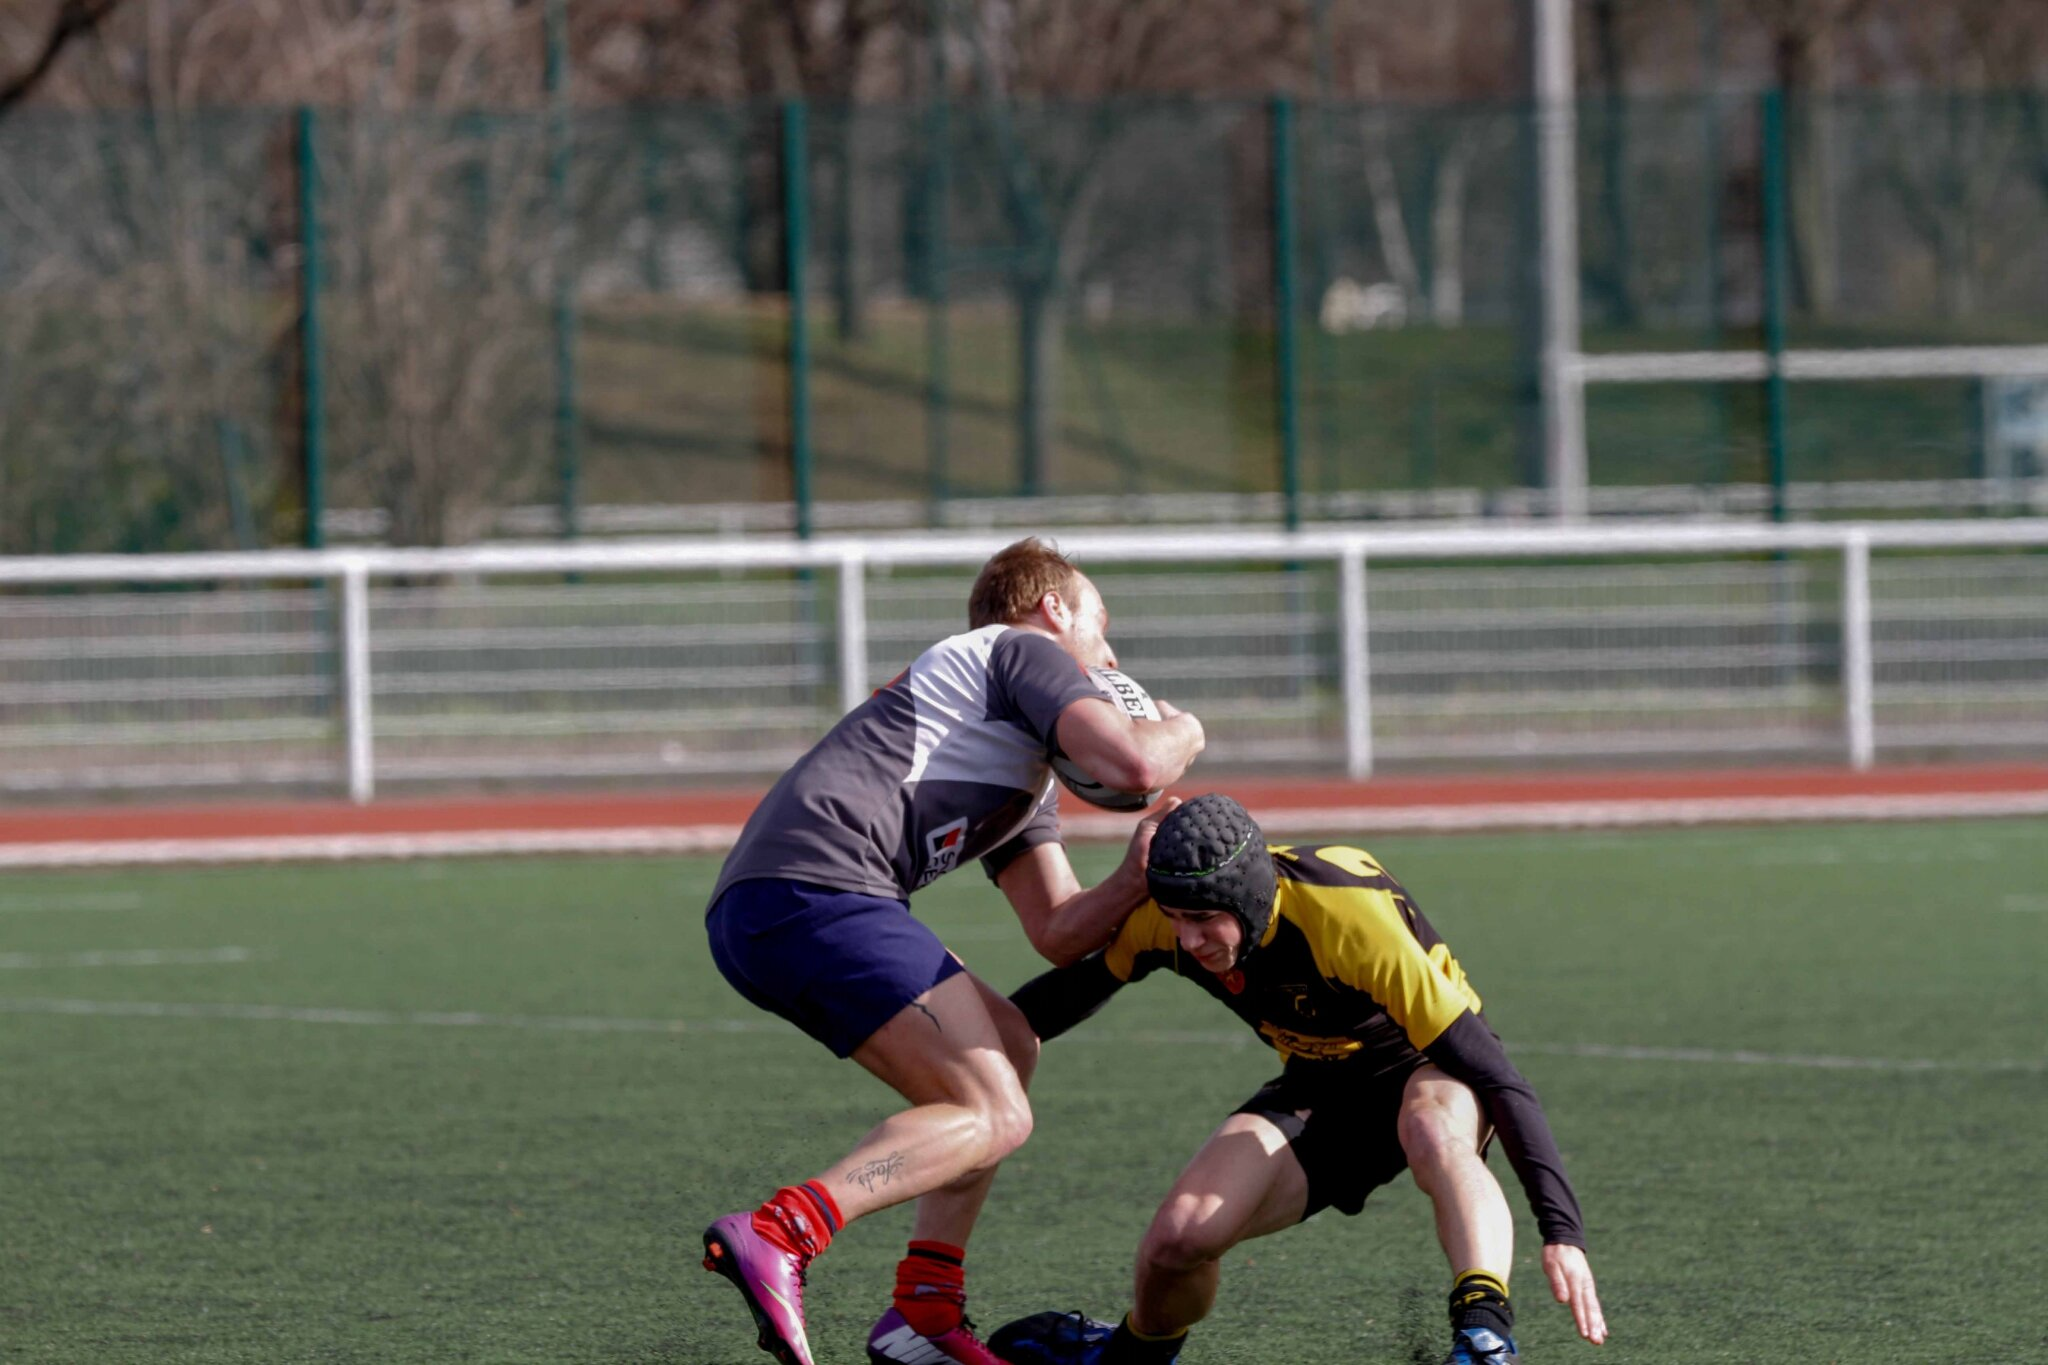 RCP15-RCT-R20